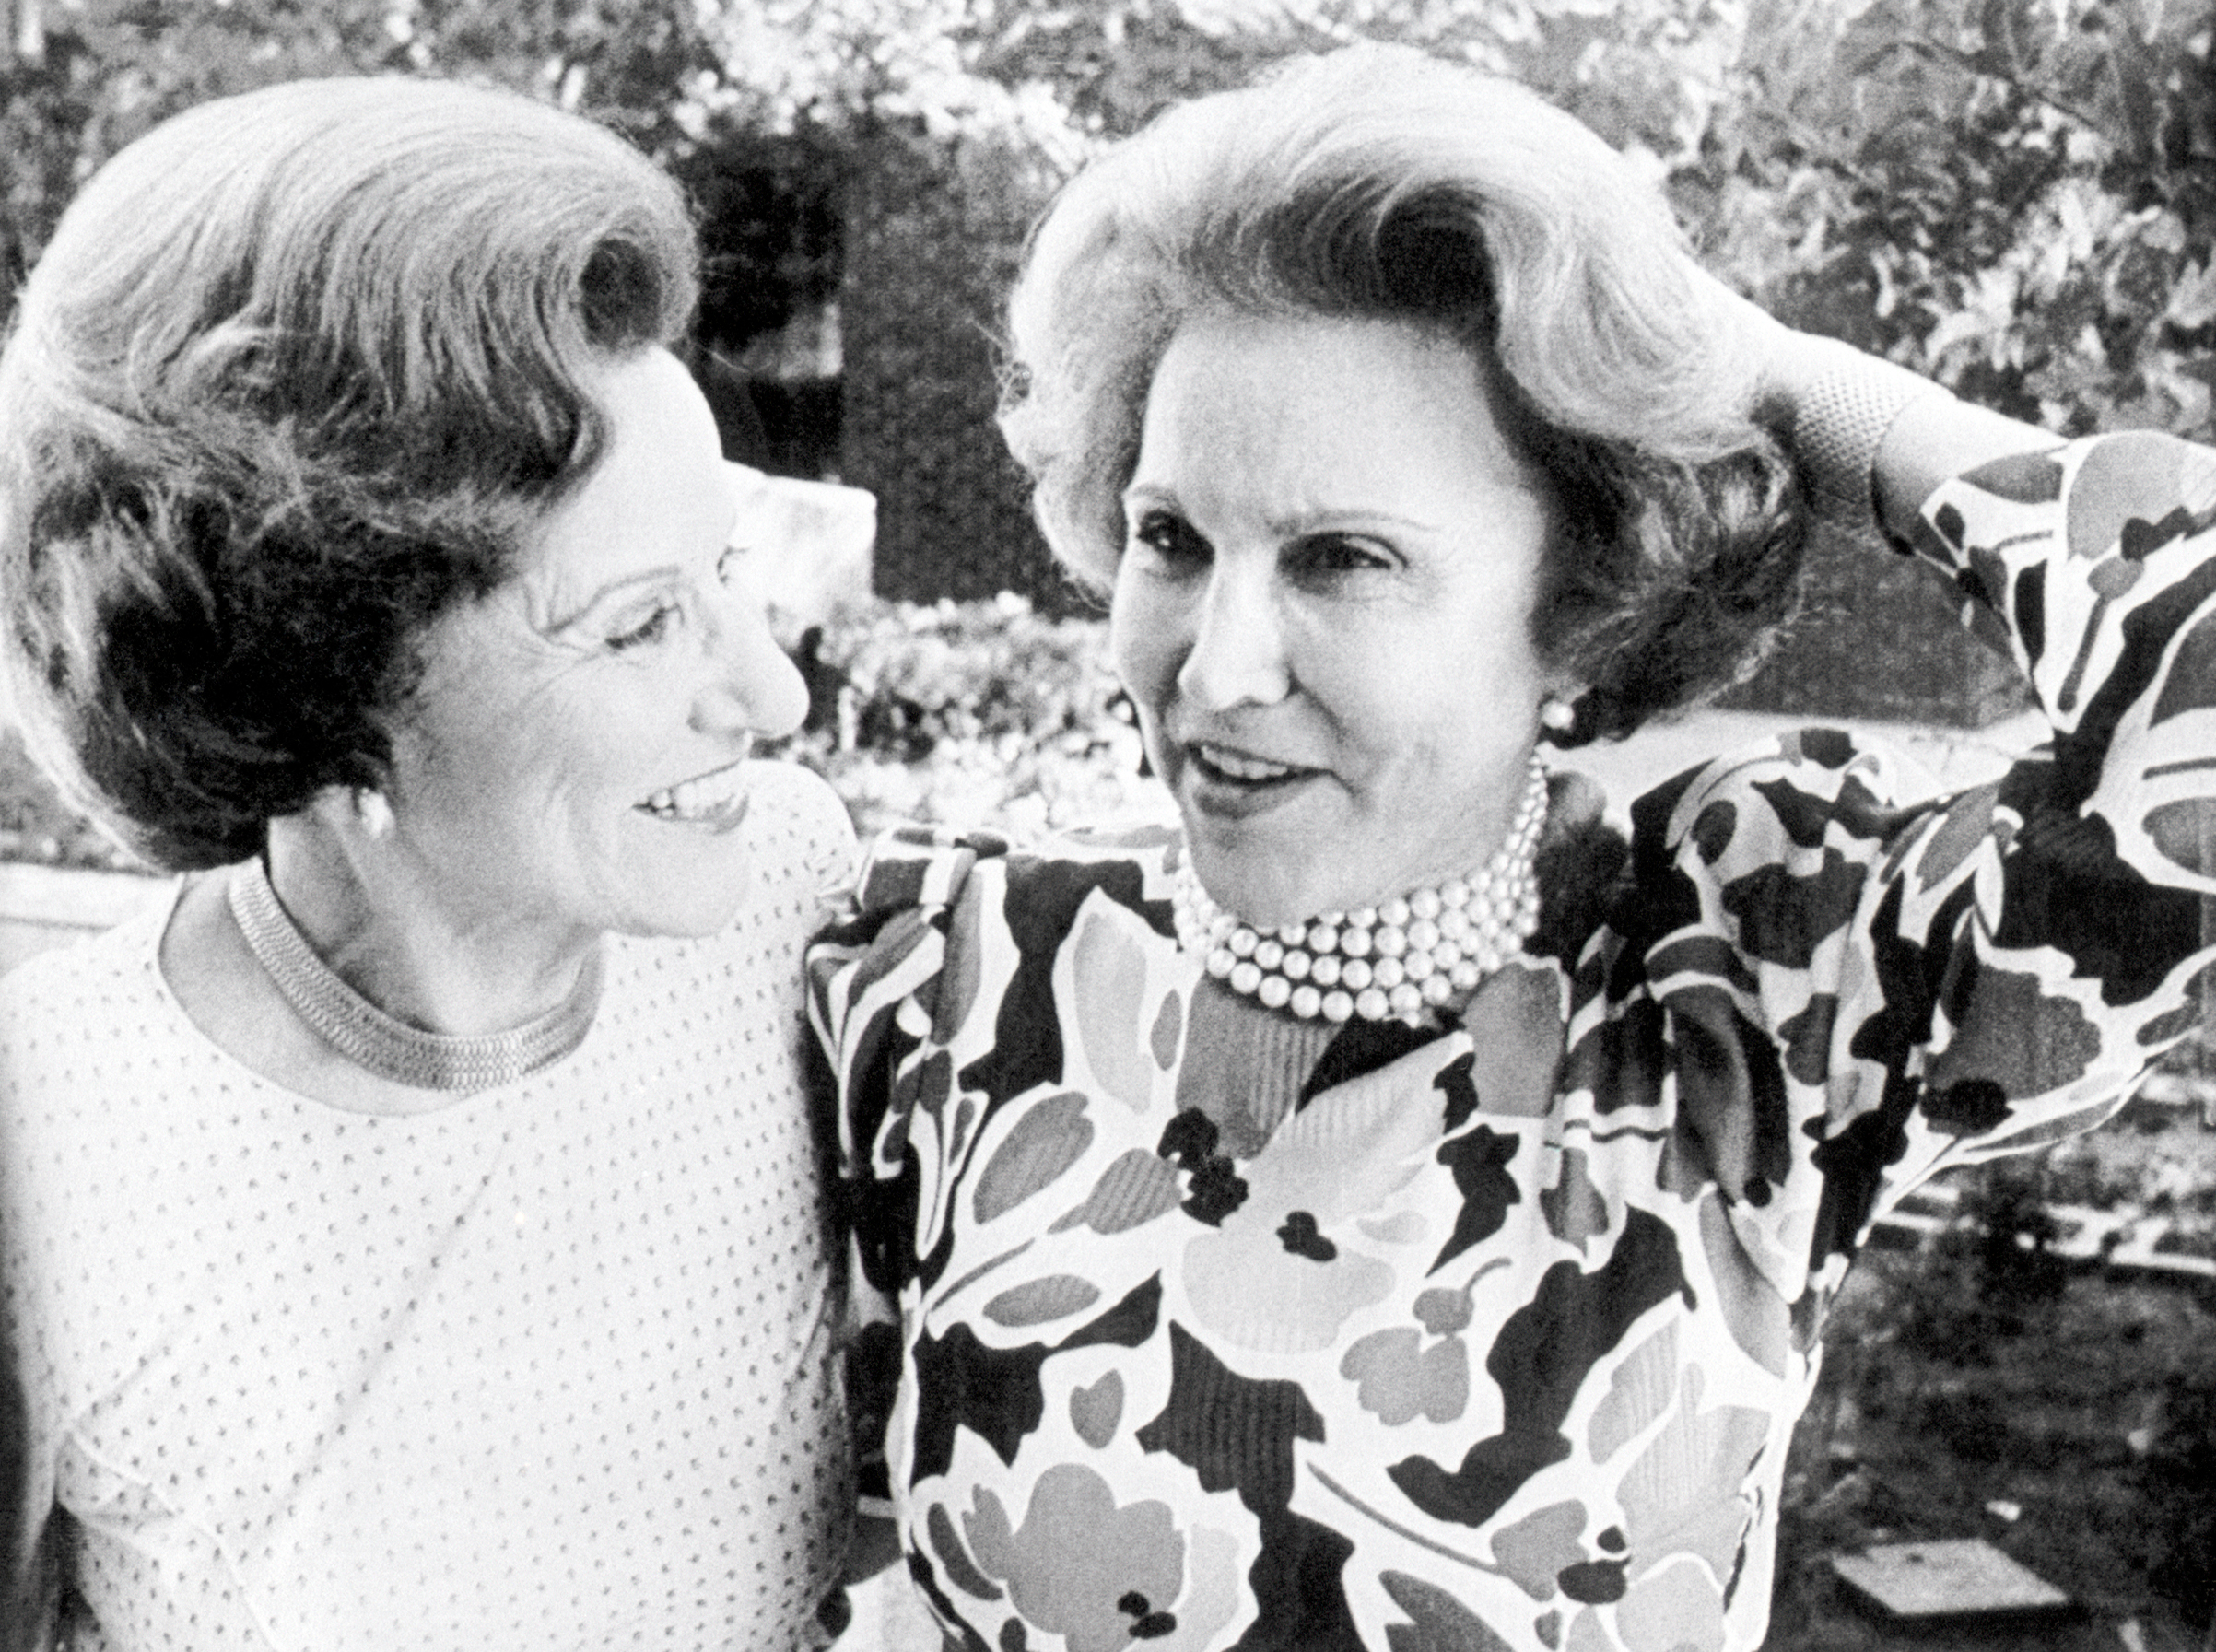 Advice columnists and twin sisters Abby Van Buren and Anne Landers at their fiftieth high school reunion in Sioux City, Iowa. June 21, 1986.